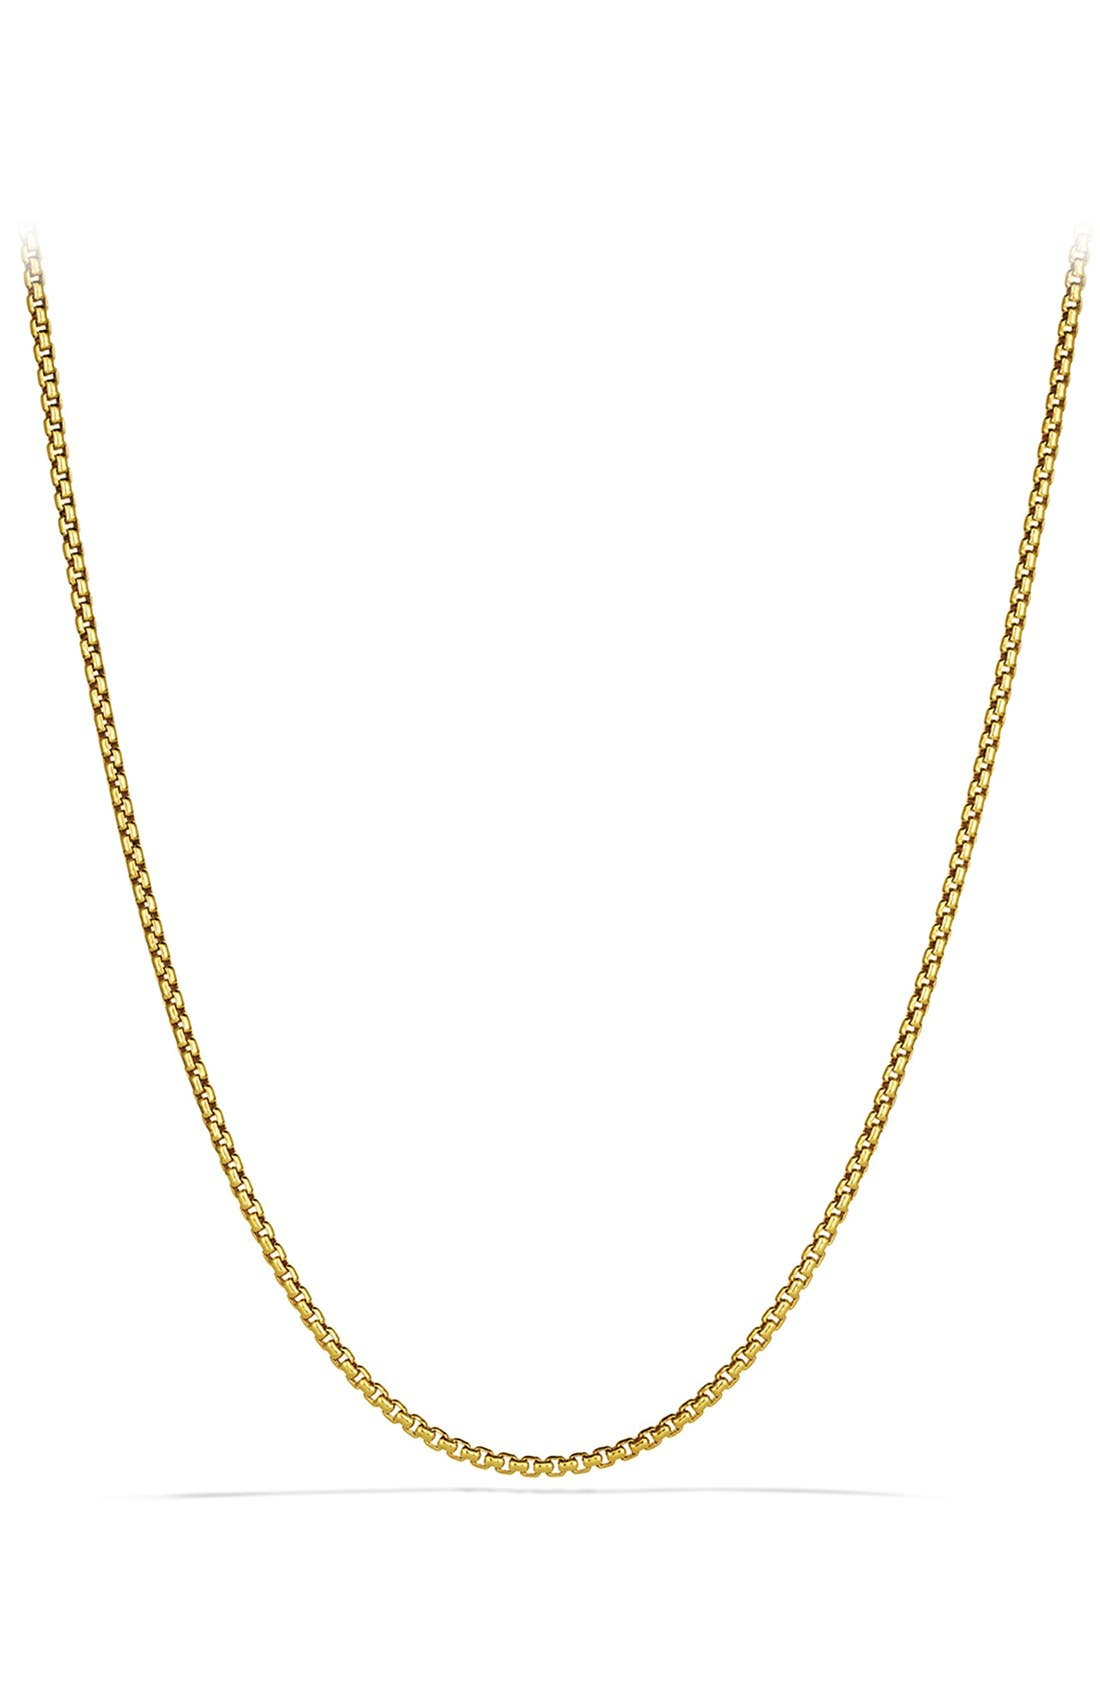 'Chain' Small Box Chain Necklace,                             Main thumbnail 1, color,                             GOLD